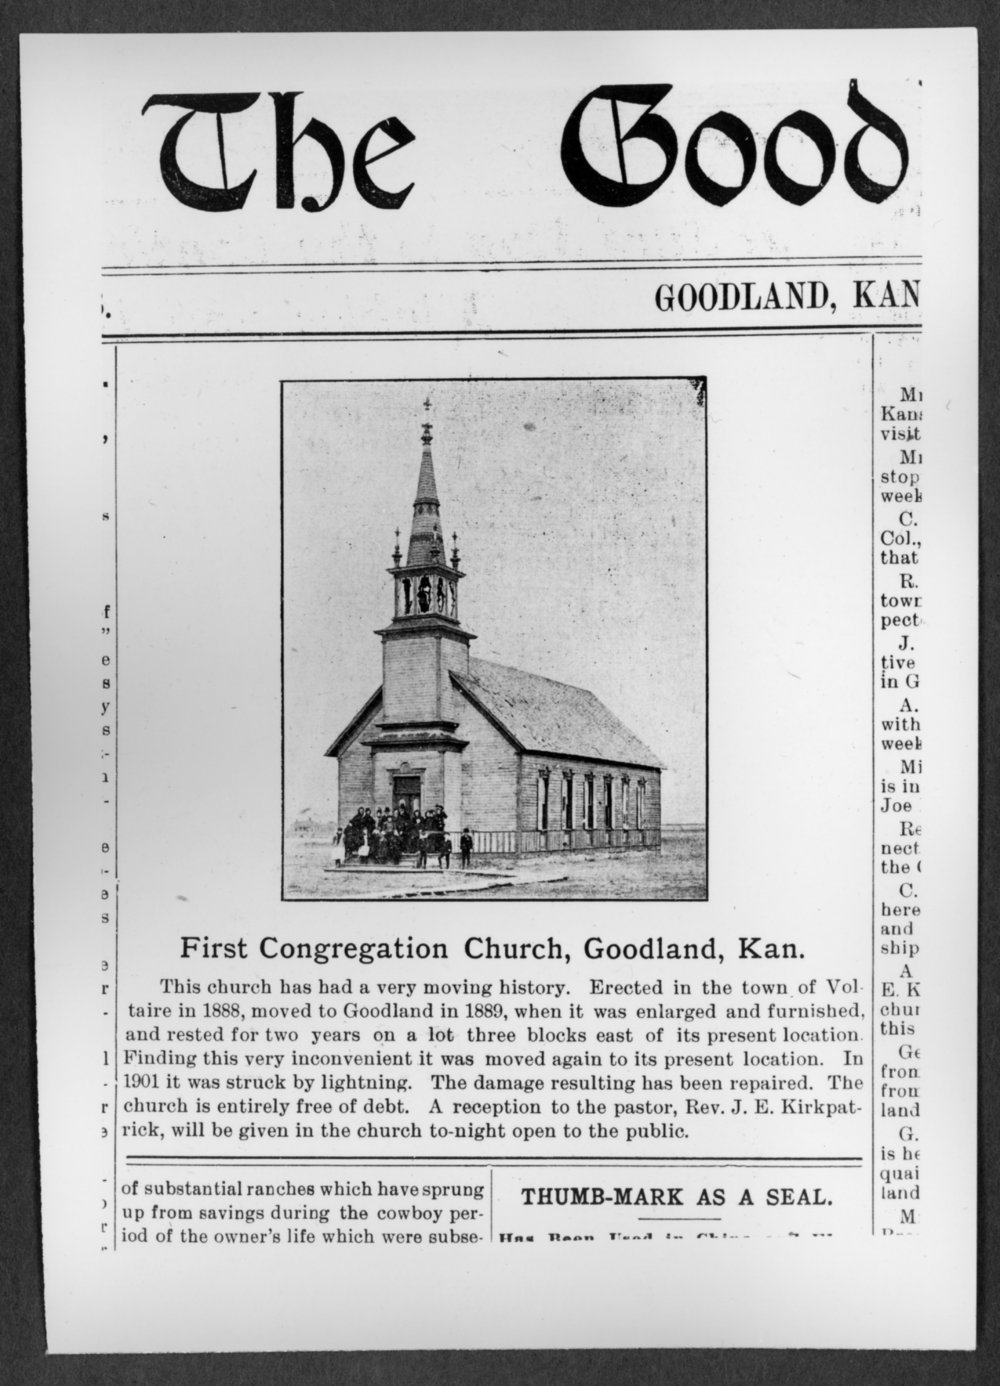 Scenes of Sherman County, Kansas - A photograph of the First Congregational Church in Goodland, Kansas, from the Goodland Republic, February 7, 1902.